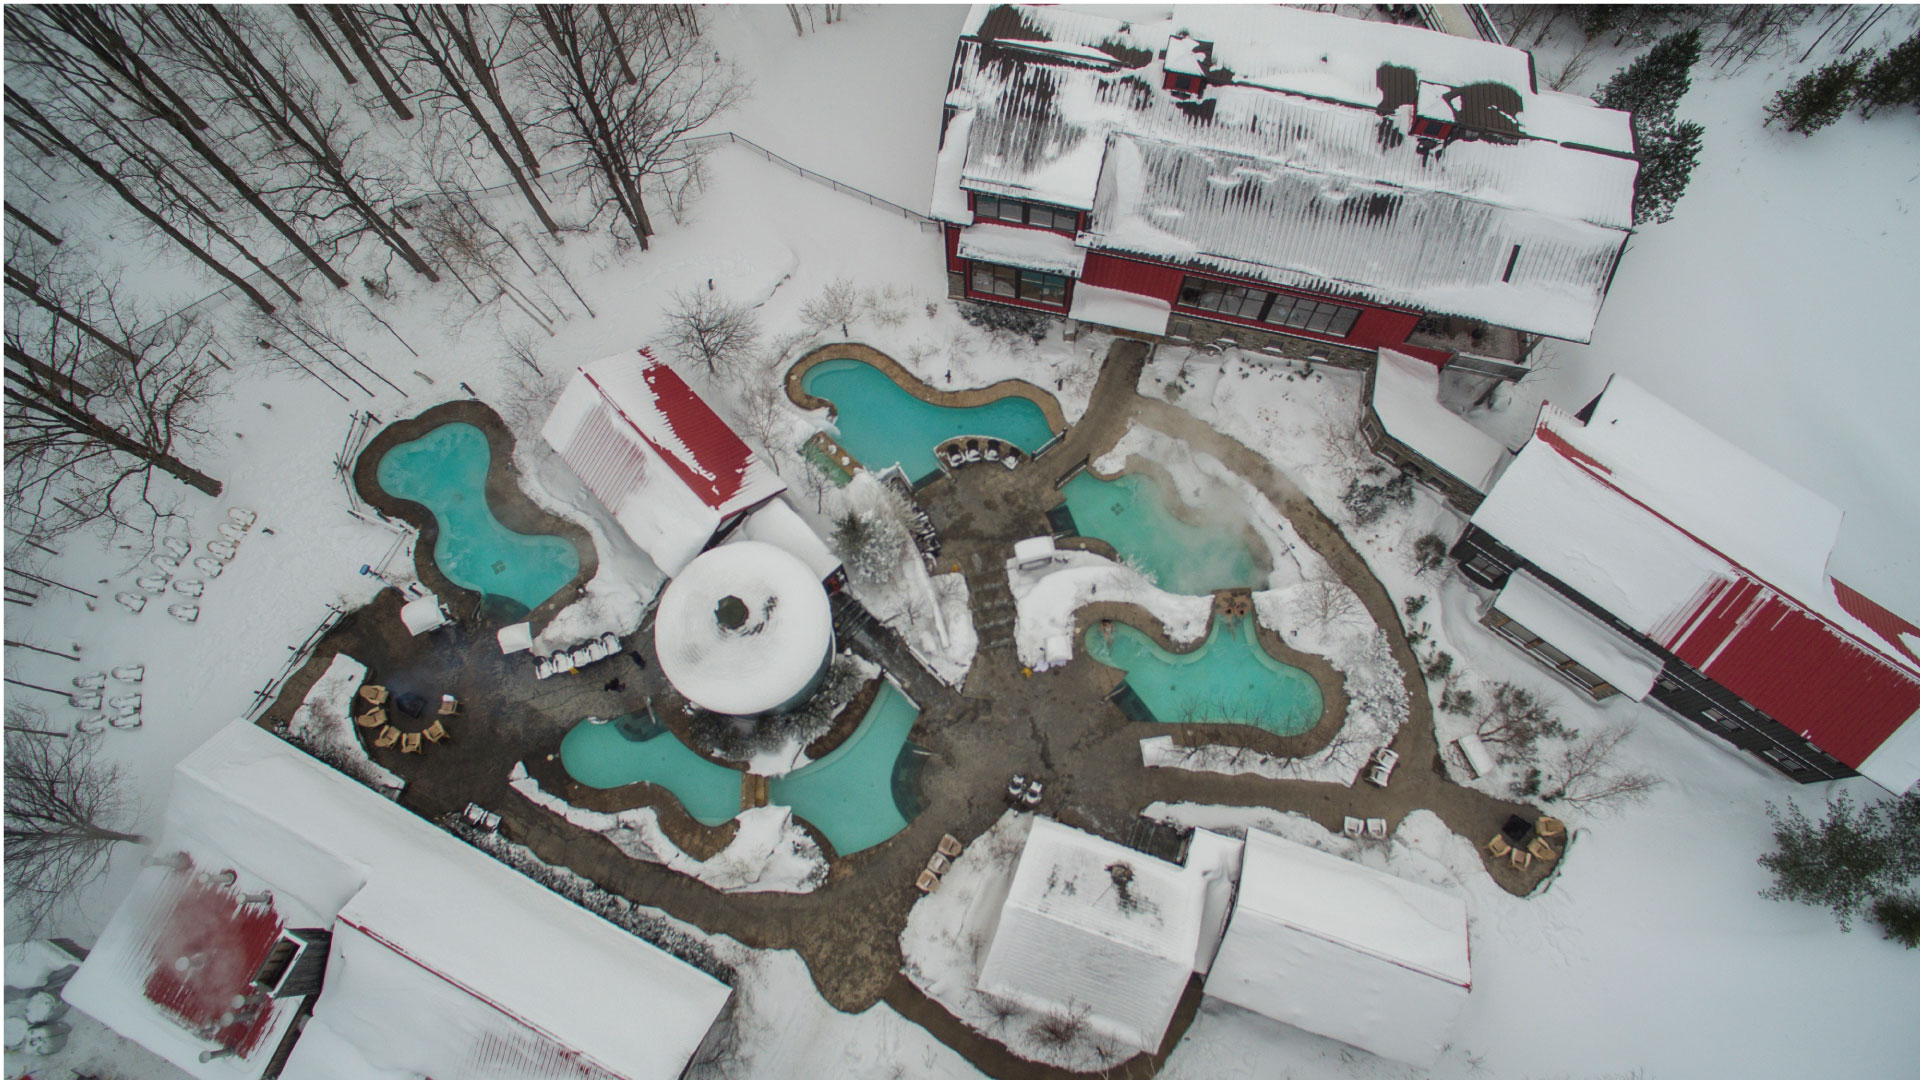 Overhead drone view of Scandinave Spa Blue Mountain in Winter